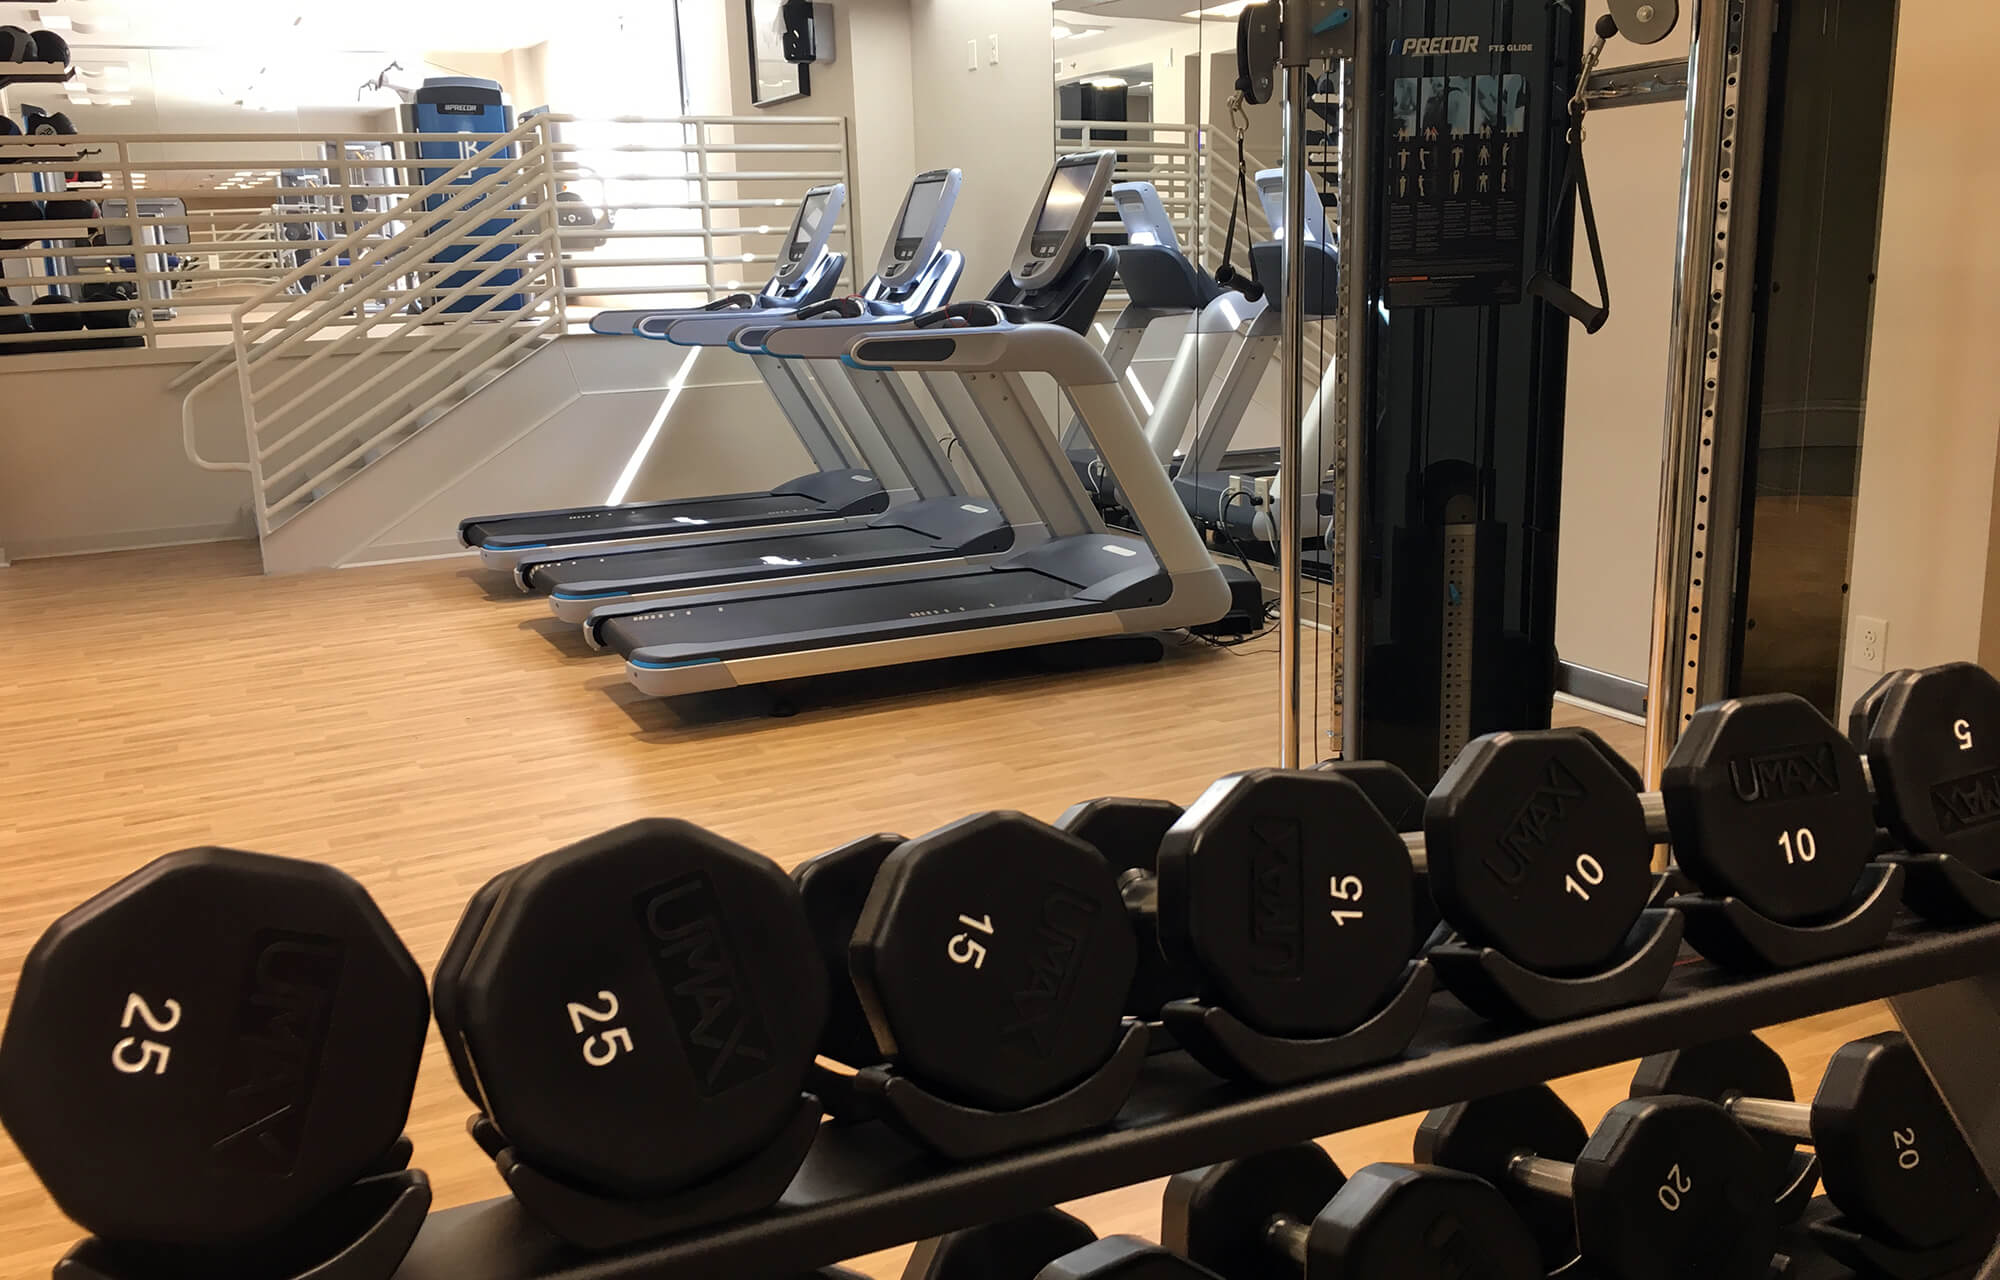 free weights and treadmills in the JB Duke Hotel fitness room, used by Run Fuqua